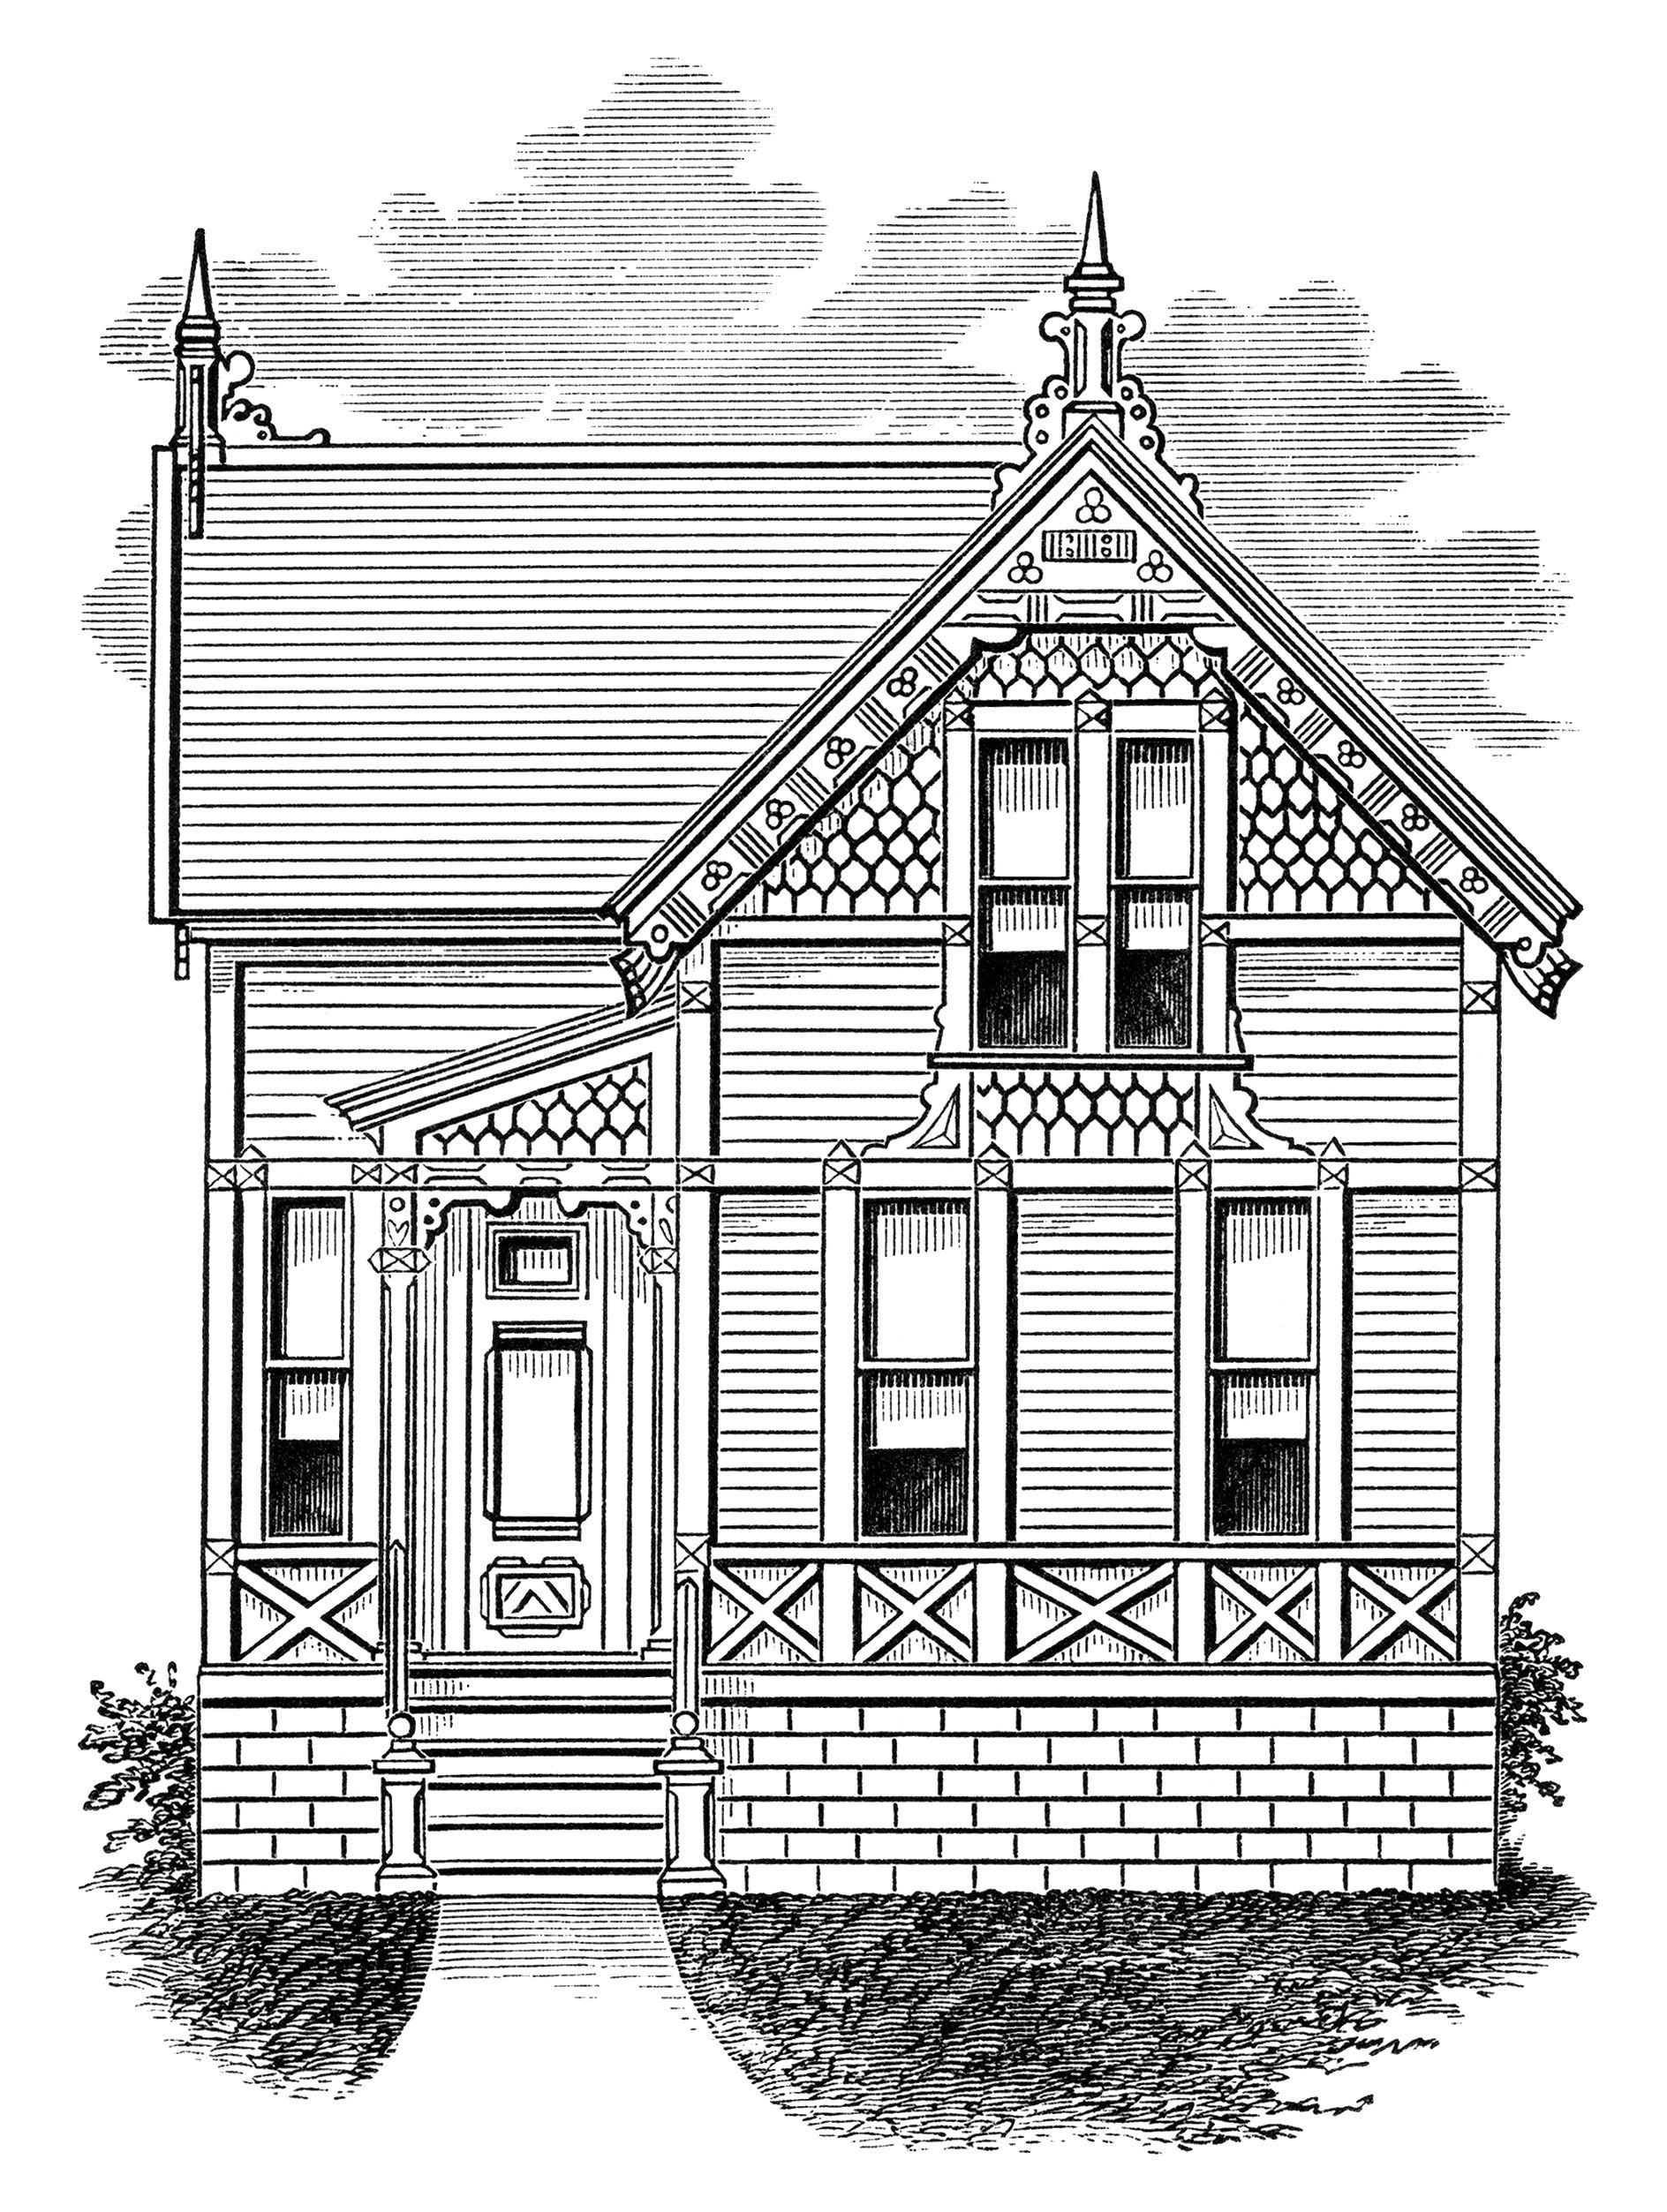 Mansion clipart property preservation. Small old house victorian